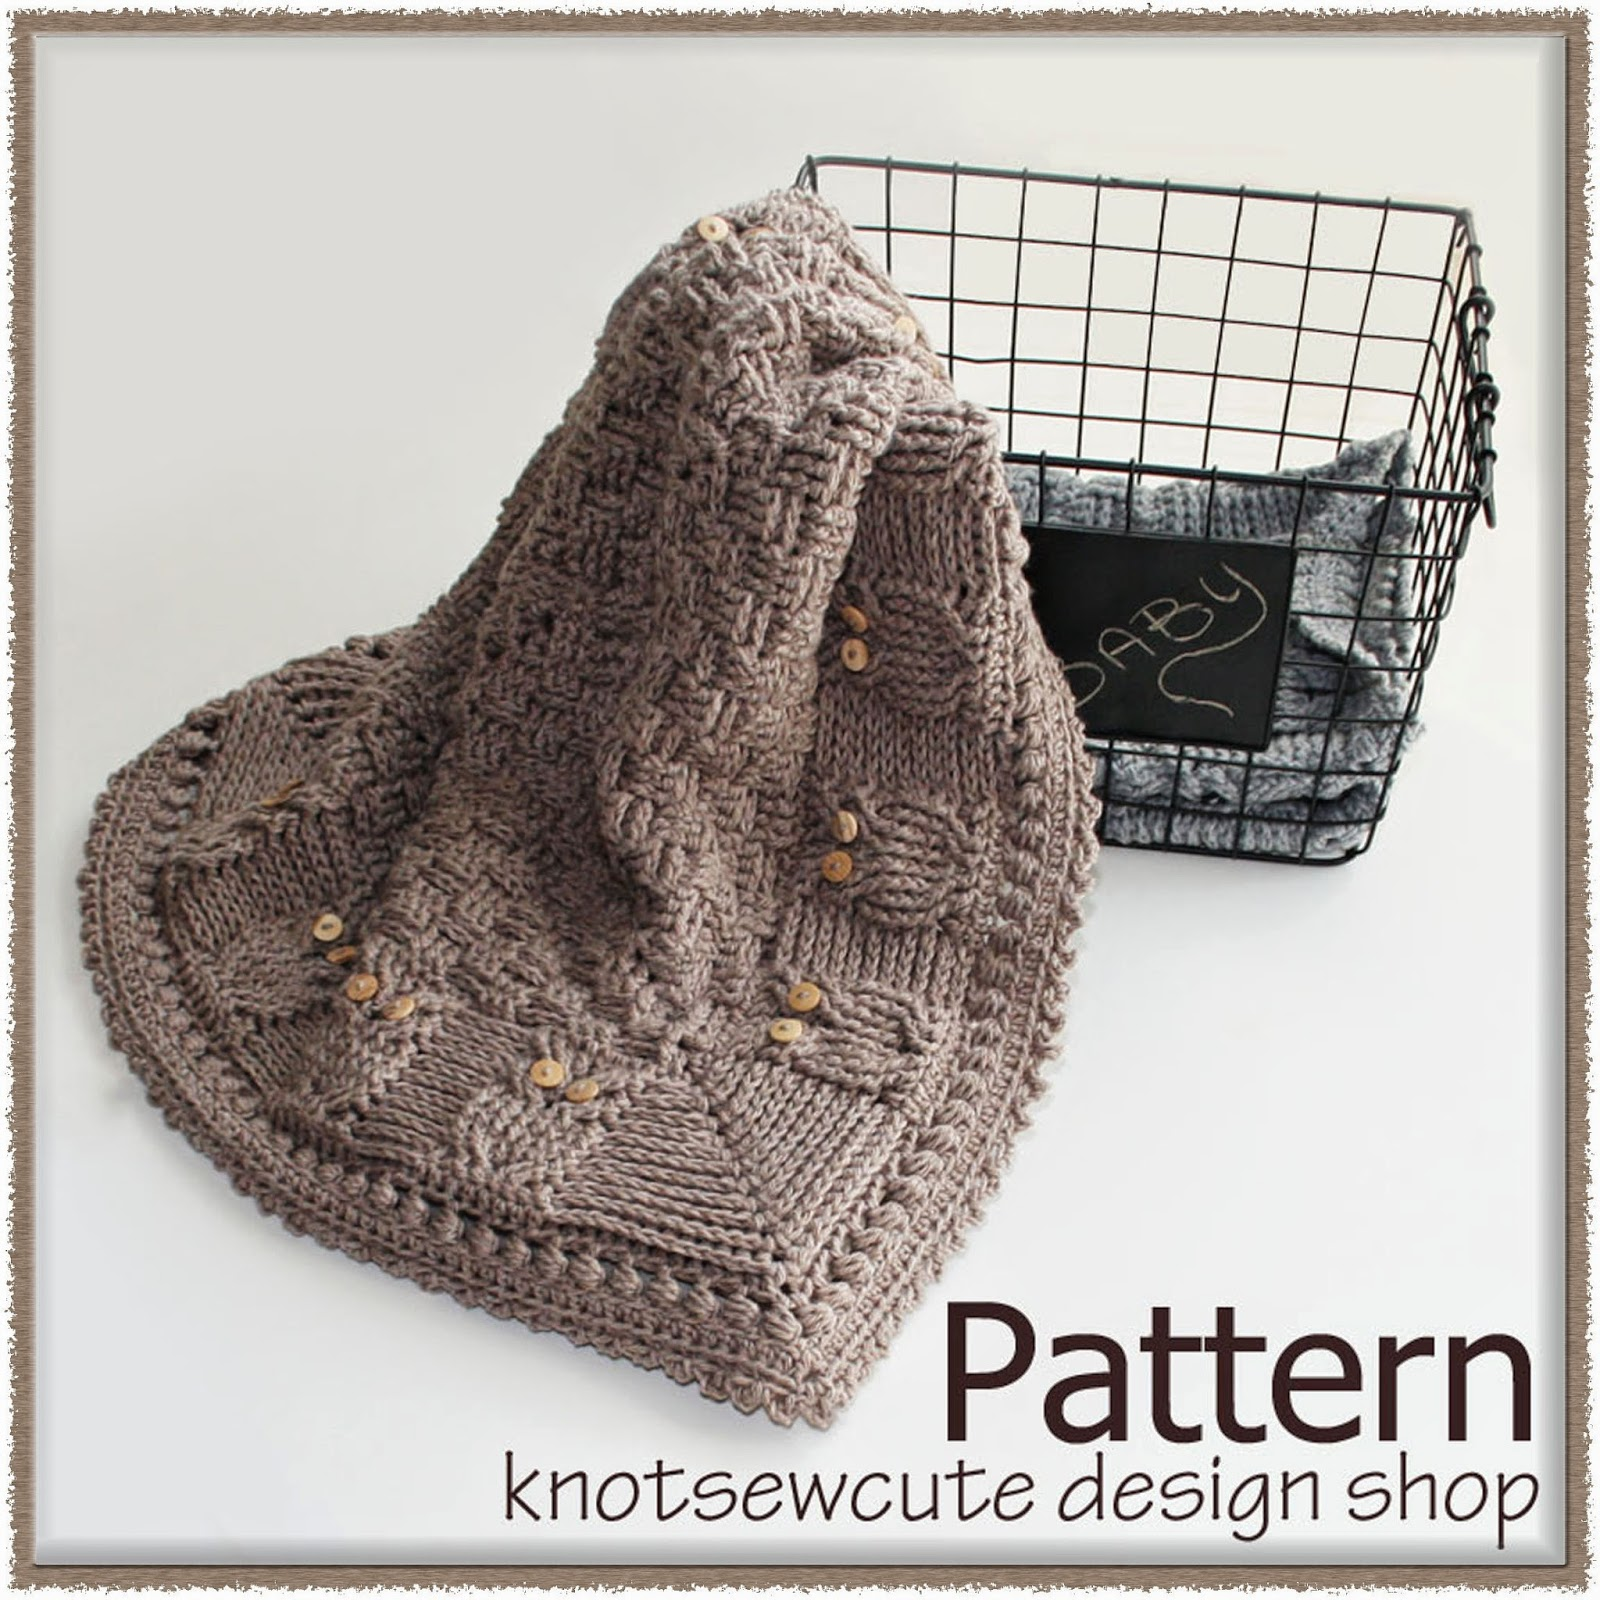 knot•sew•cute design shop: July 2014